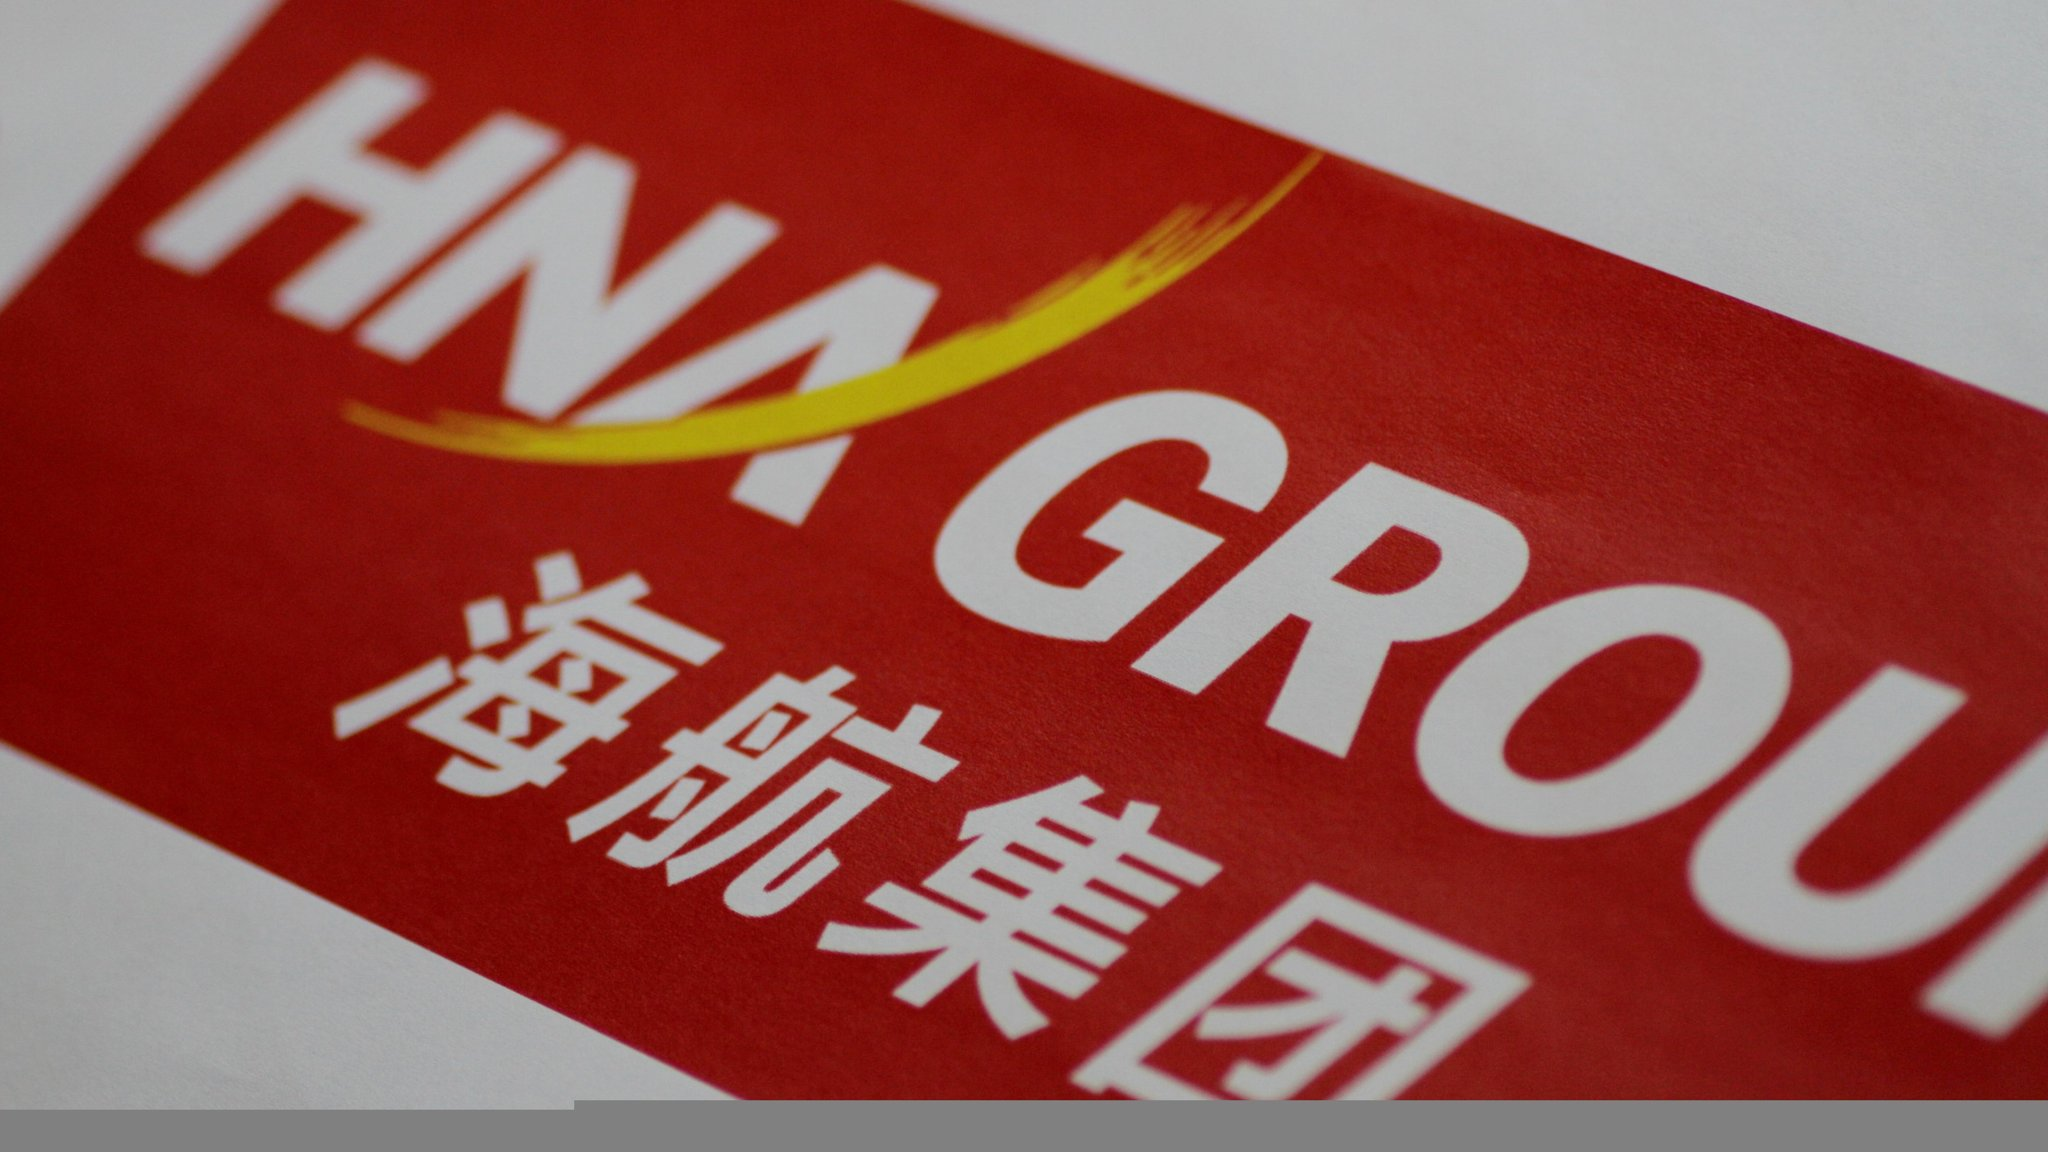 HNA Group offers high interest payment as funding pressure builds